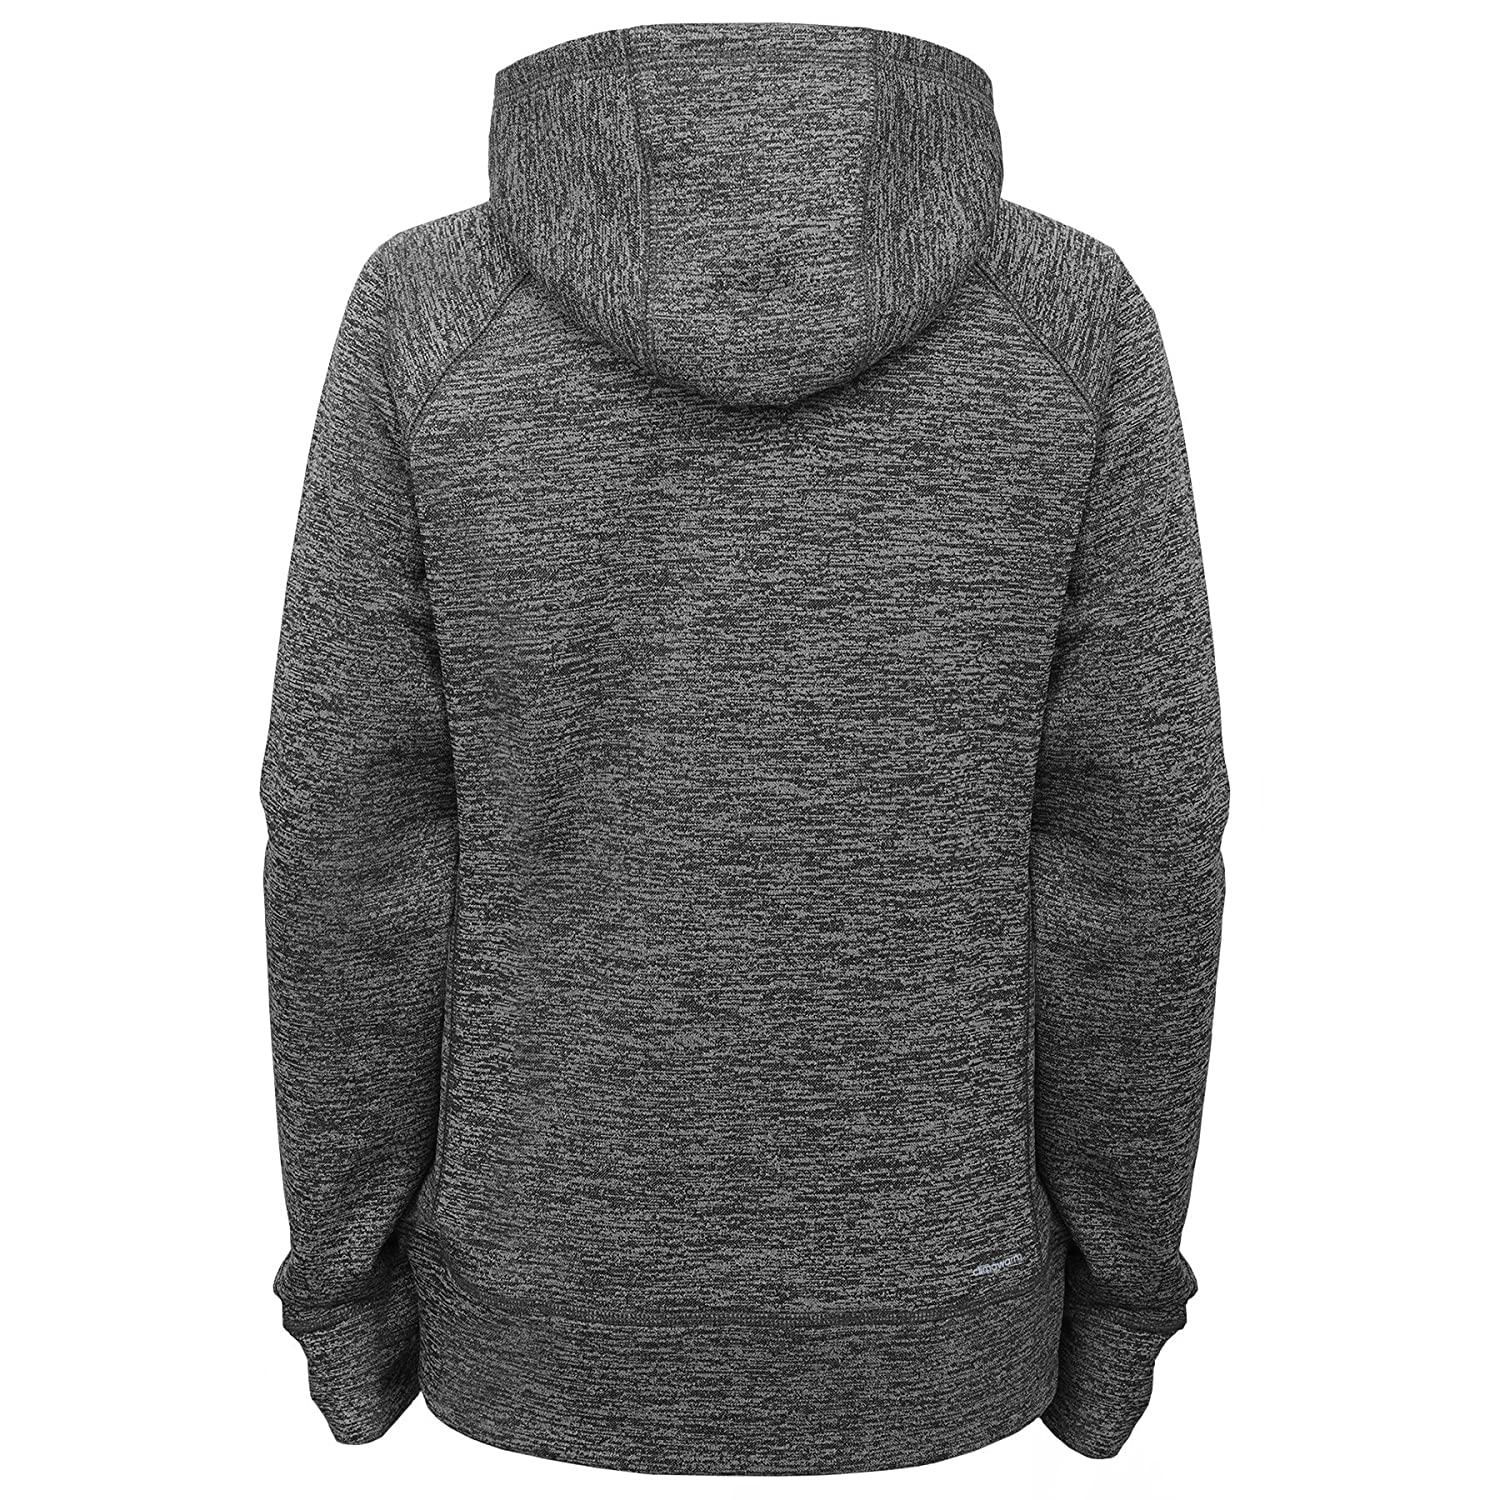 Youth Girls Small MLS by Outerstuff Bottom Pill Performance Hoodie Charcoal Grey 7-8